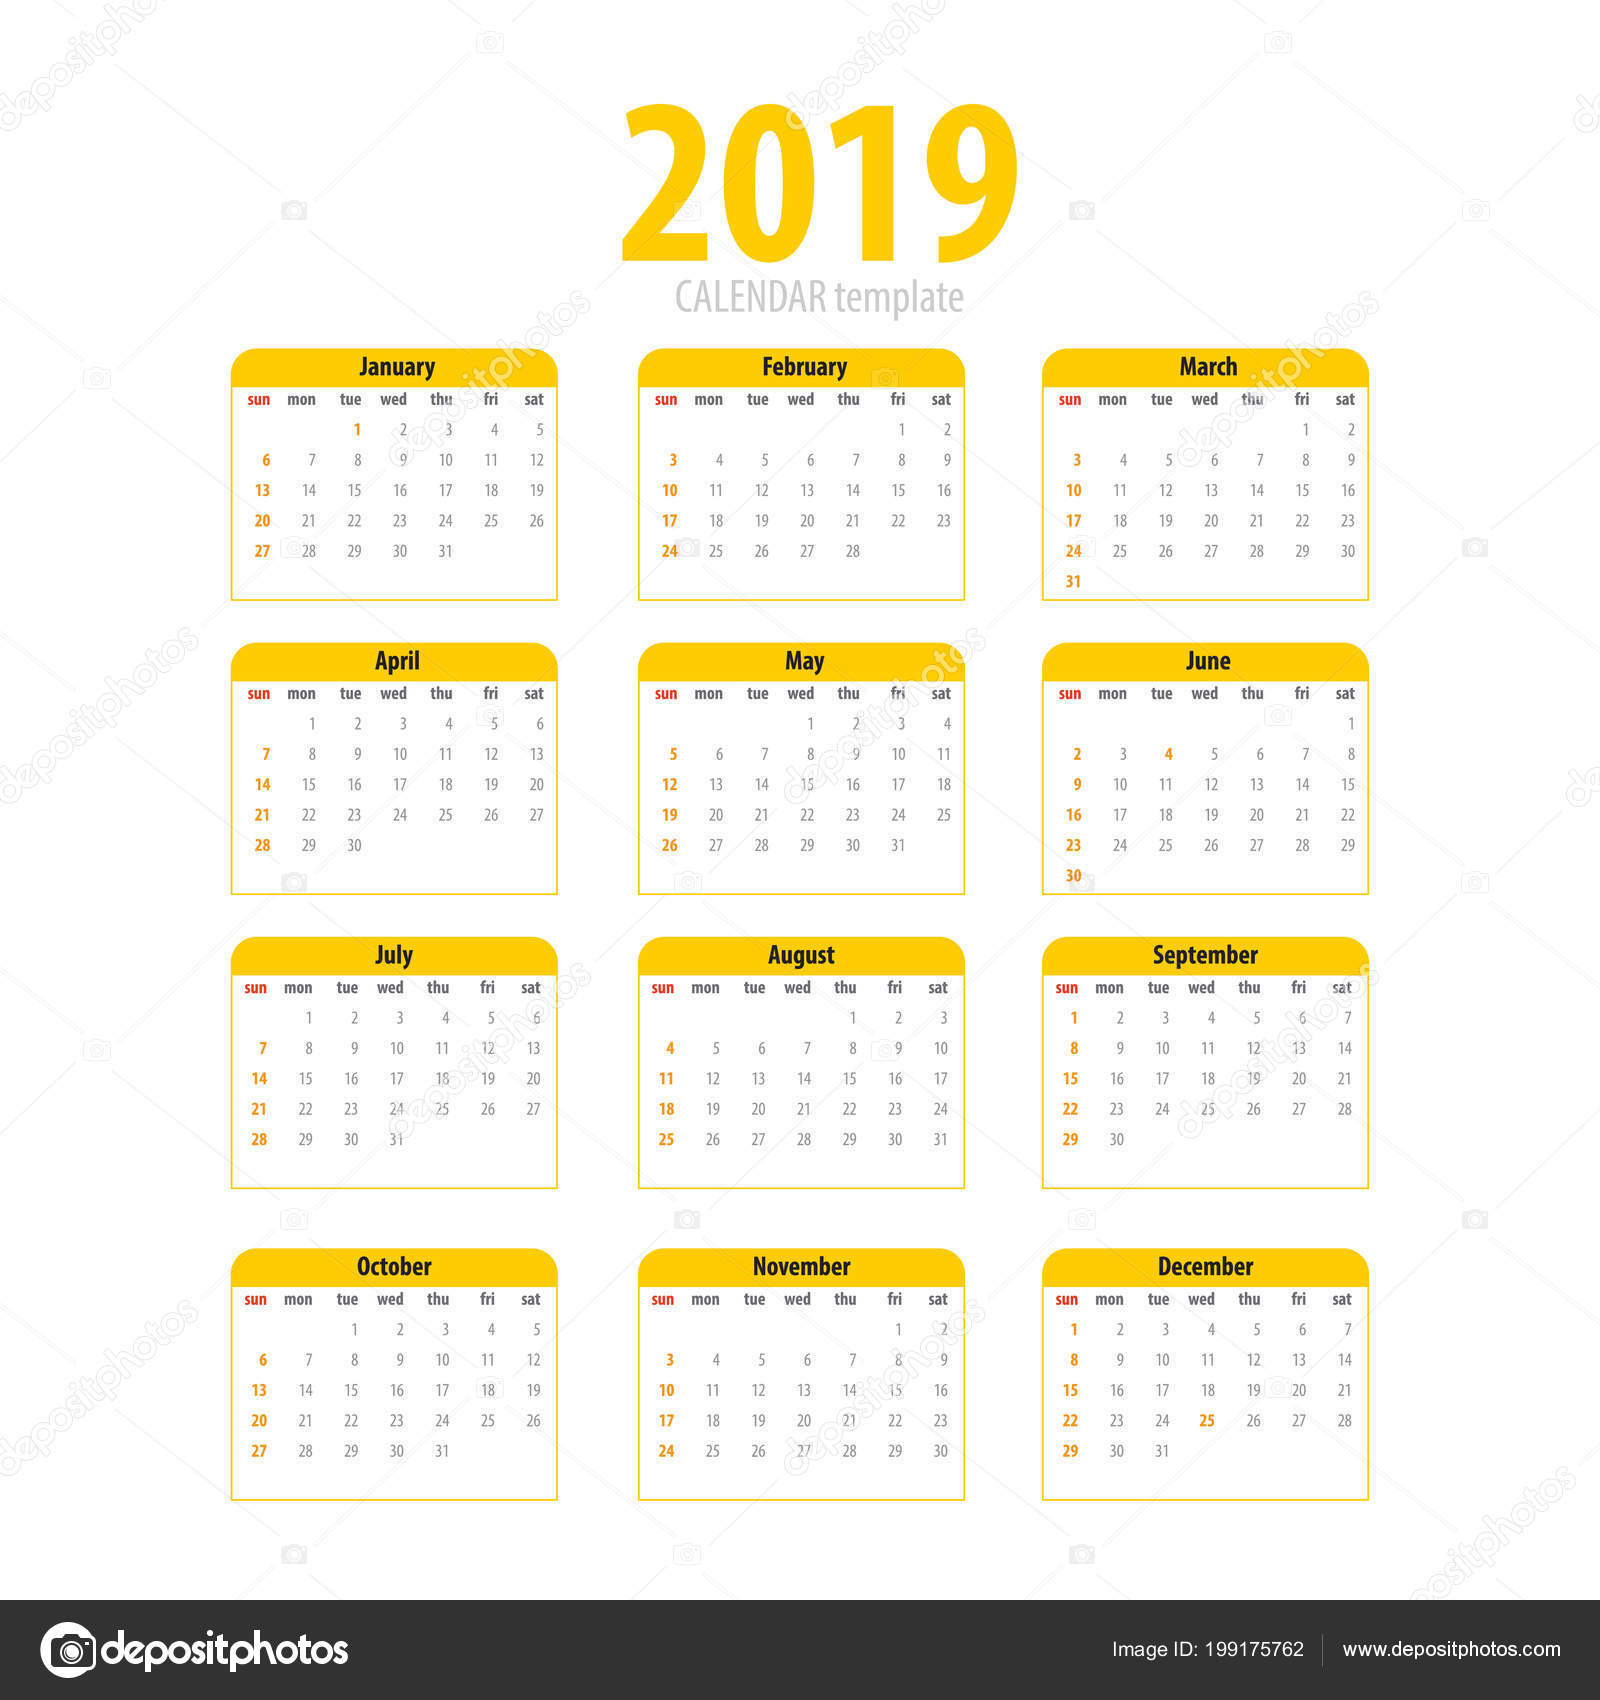 Printable calendar 2019 simple template — Stock Vector © helen tosh